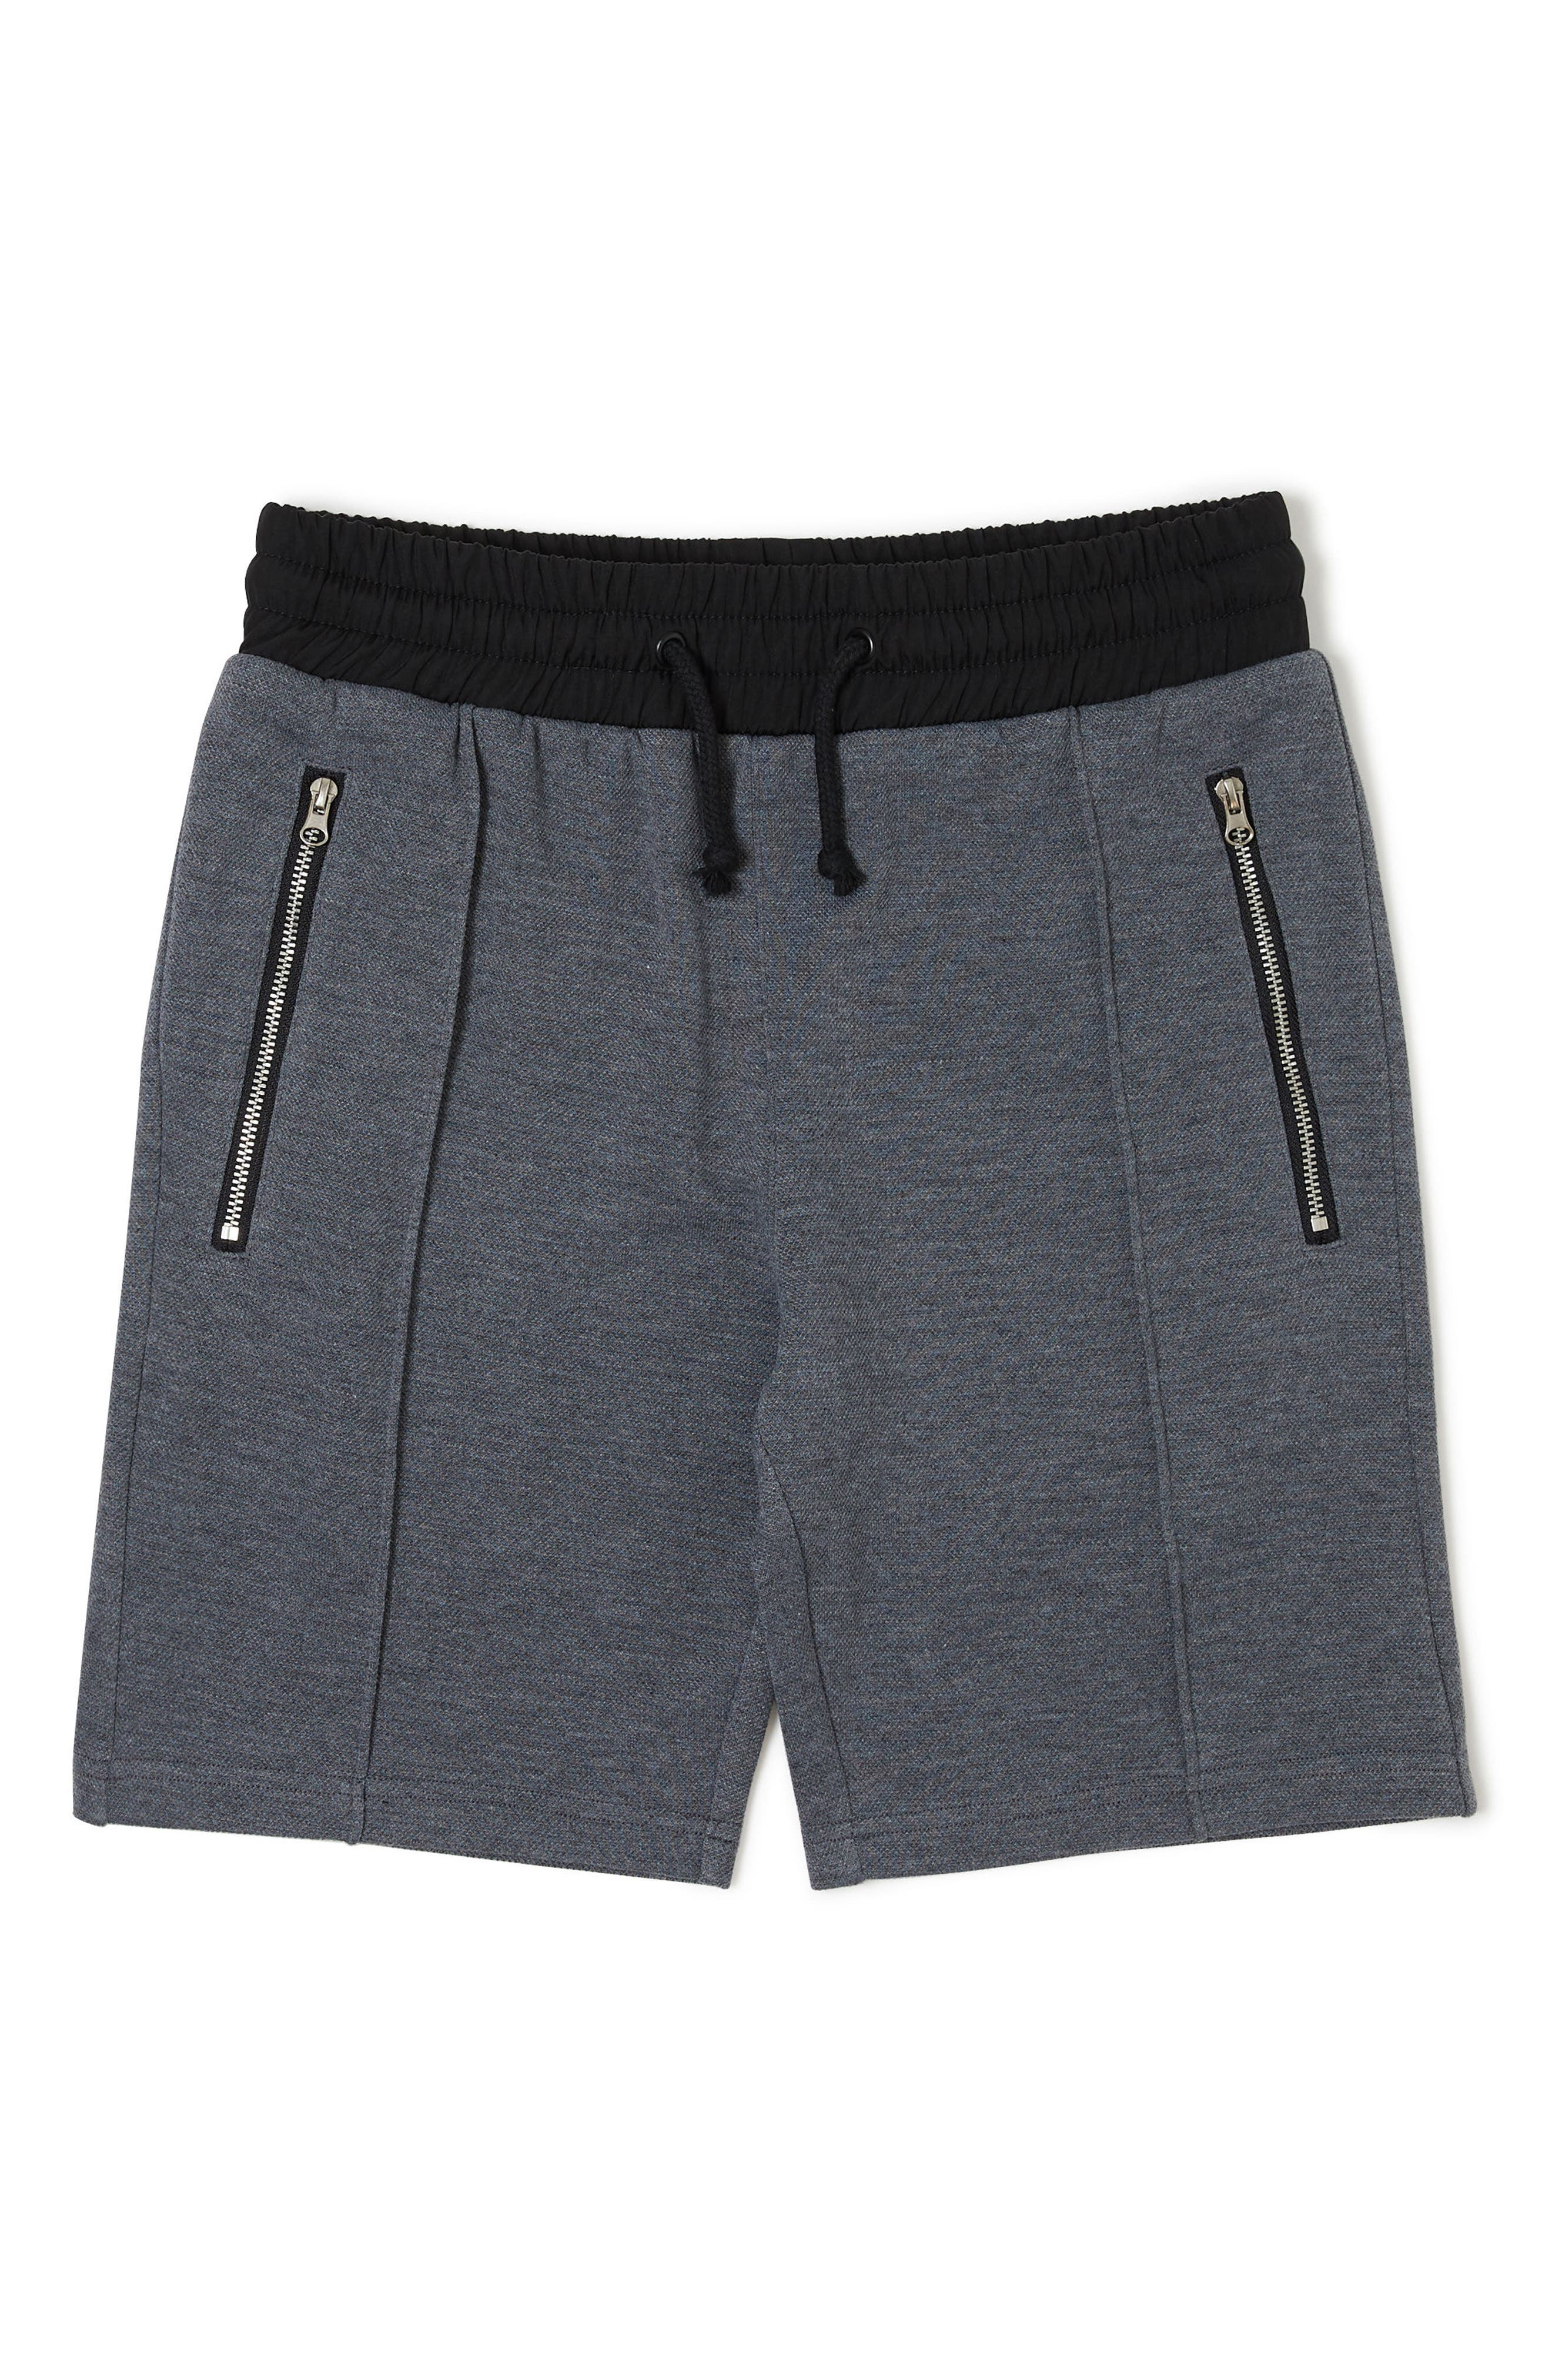 Liam Knit Shorts,                         Main,                         color, HEATHER GREY